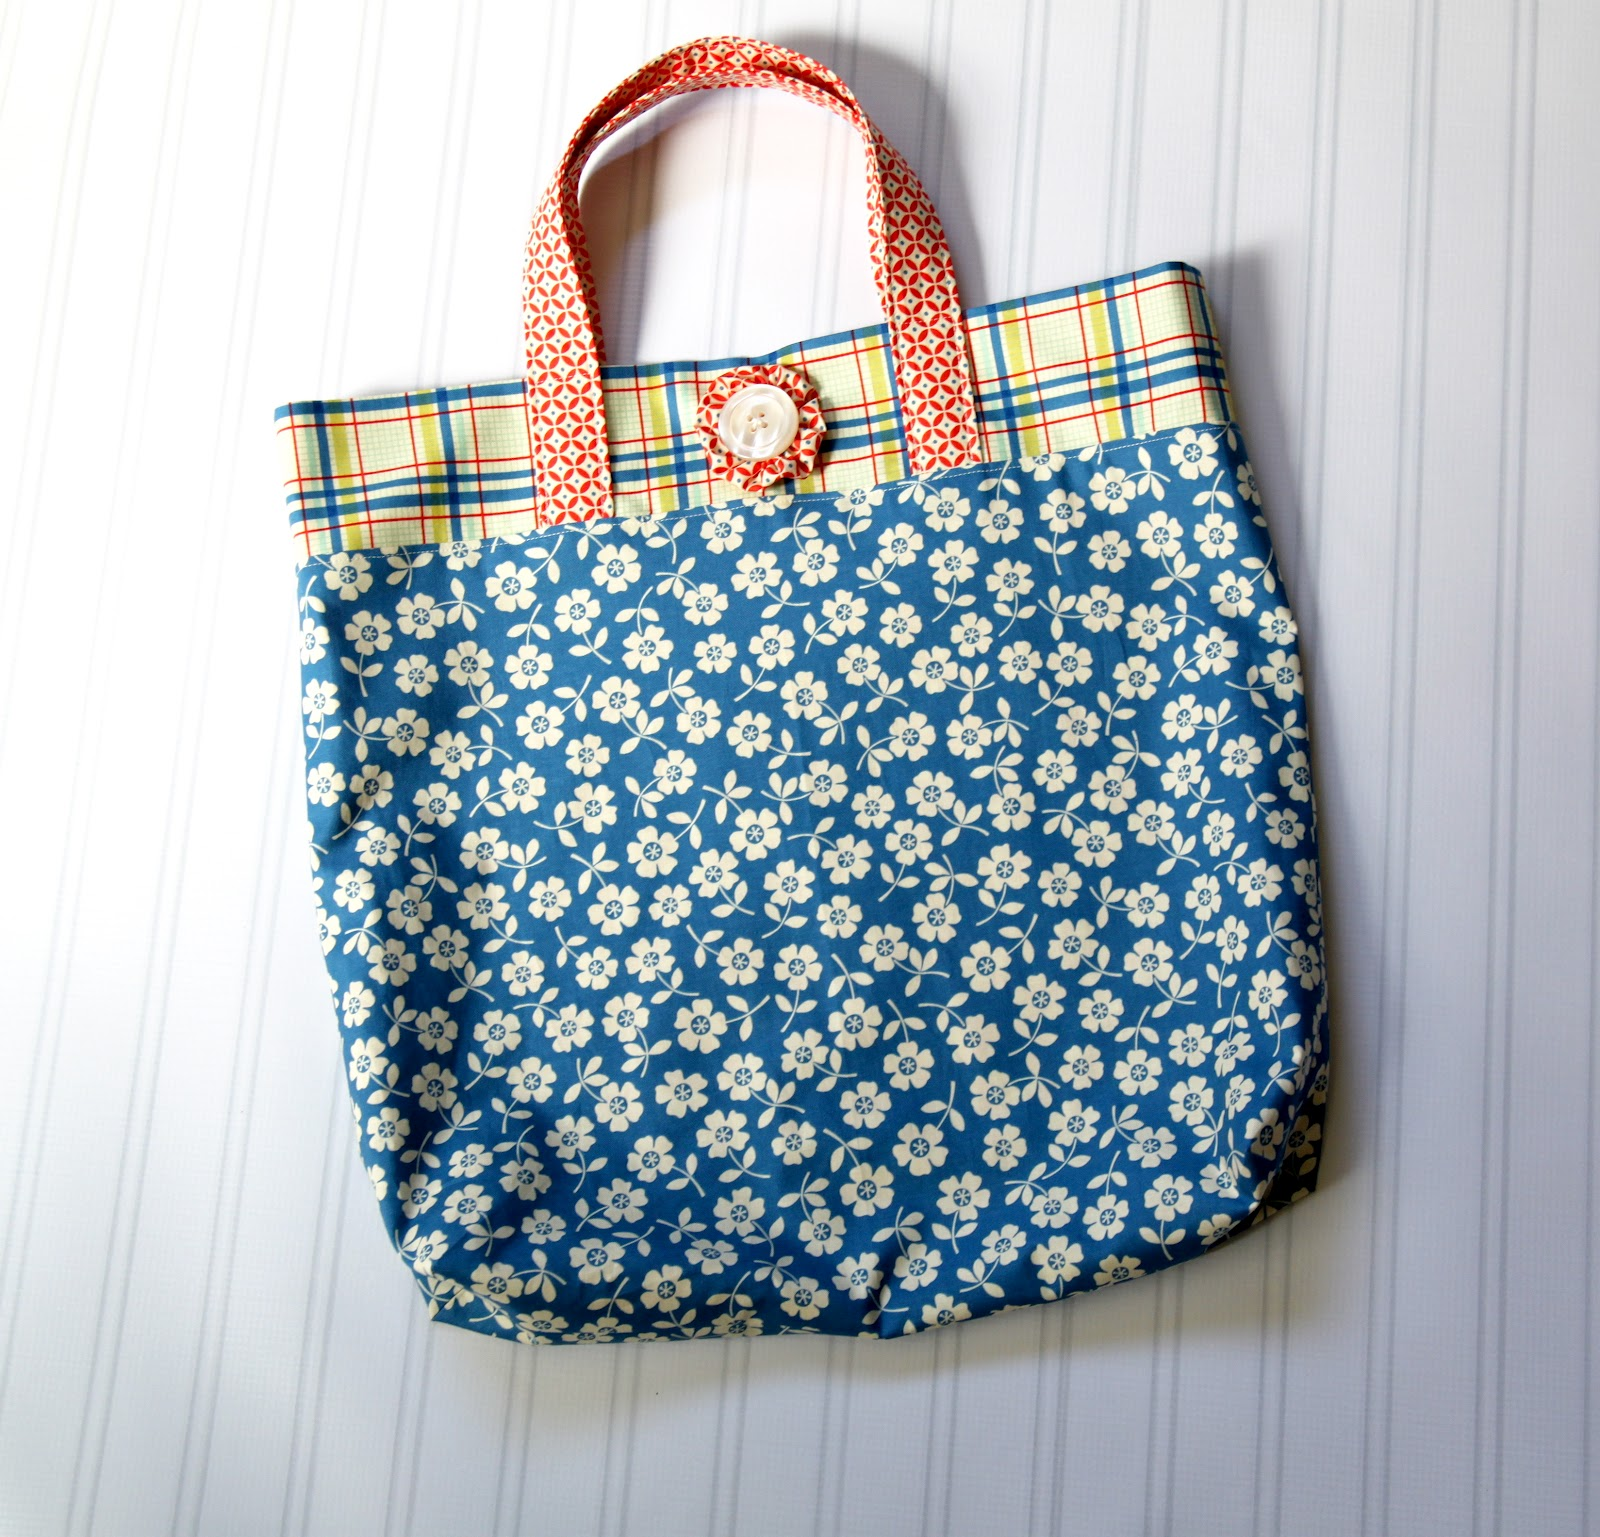 how to make a tote bag tutorial